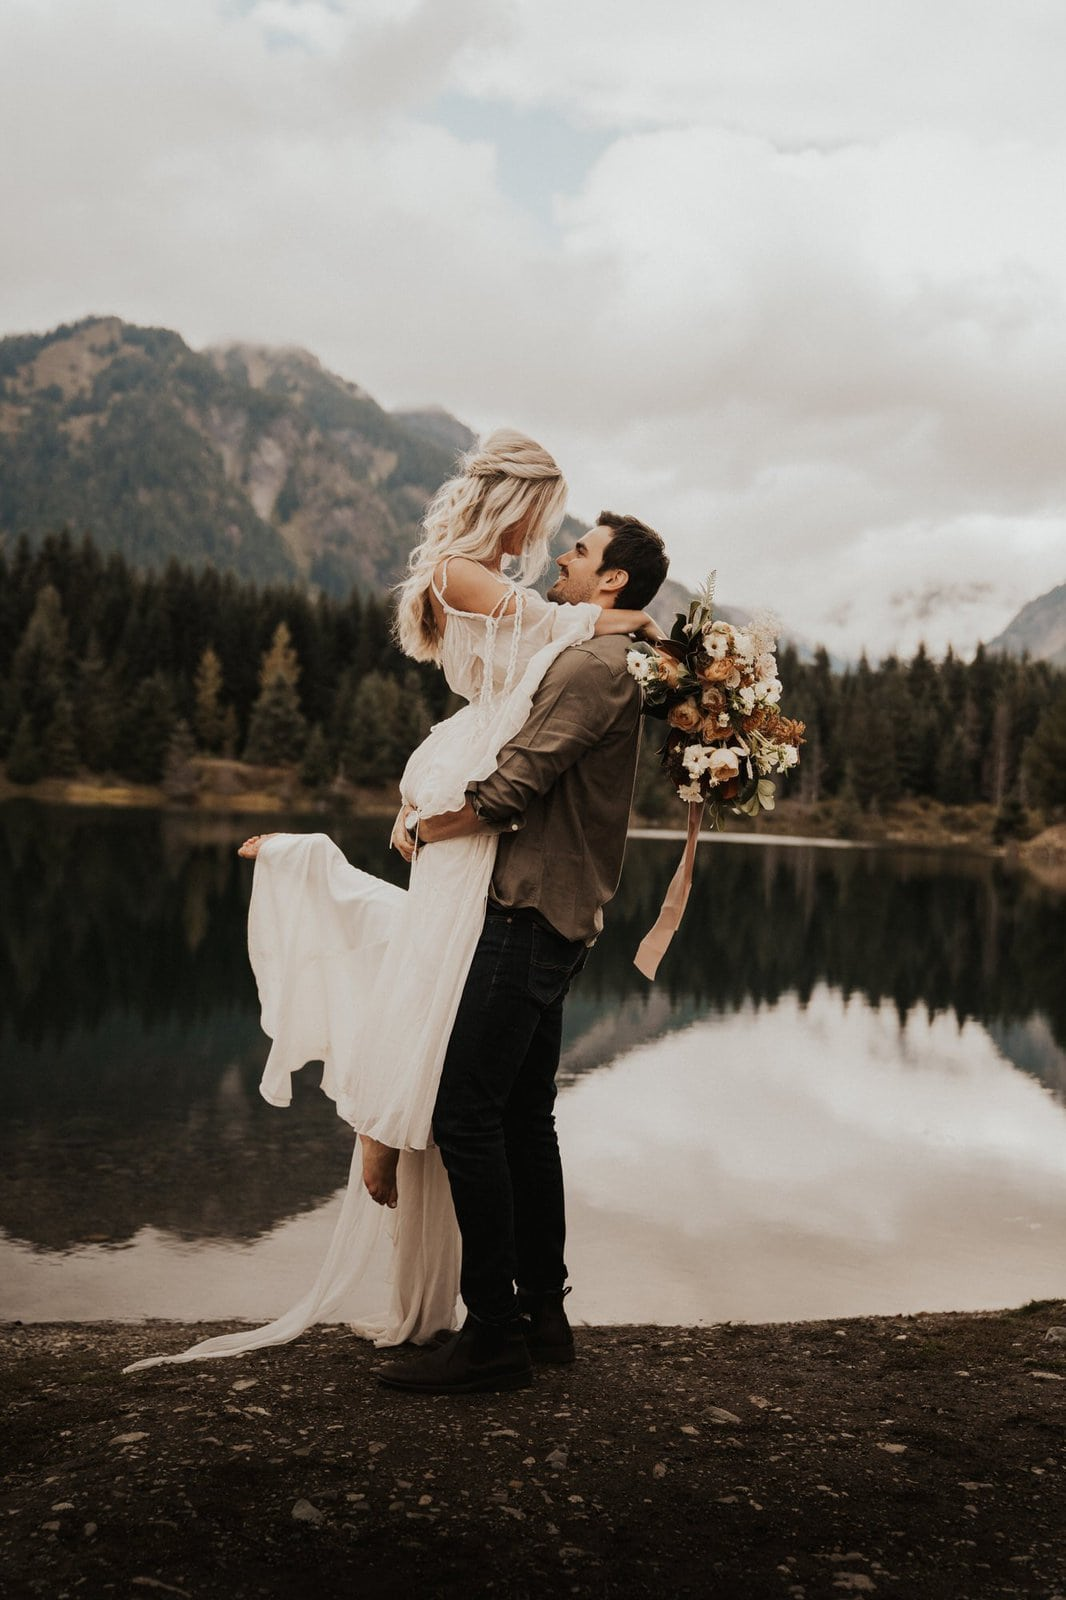 bohemian wedding portrait ideas for couples.